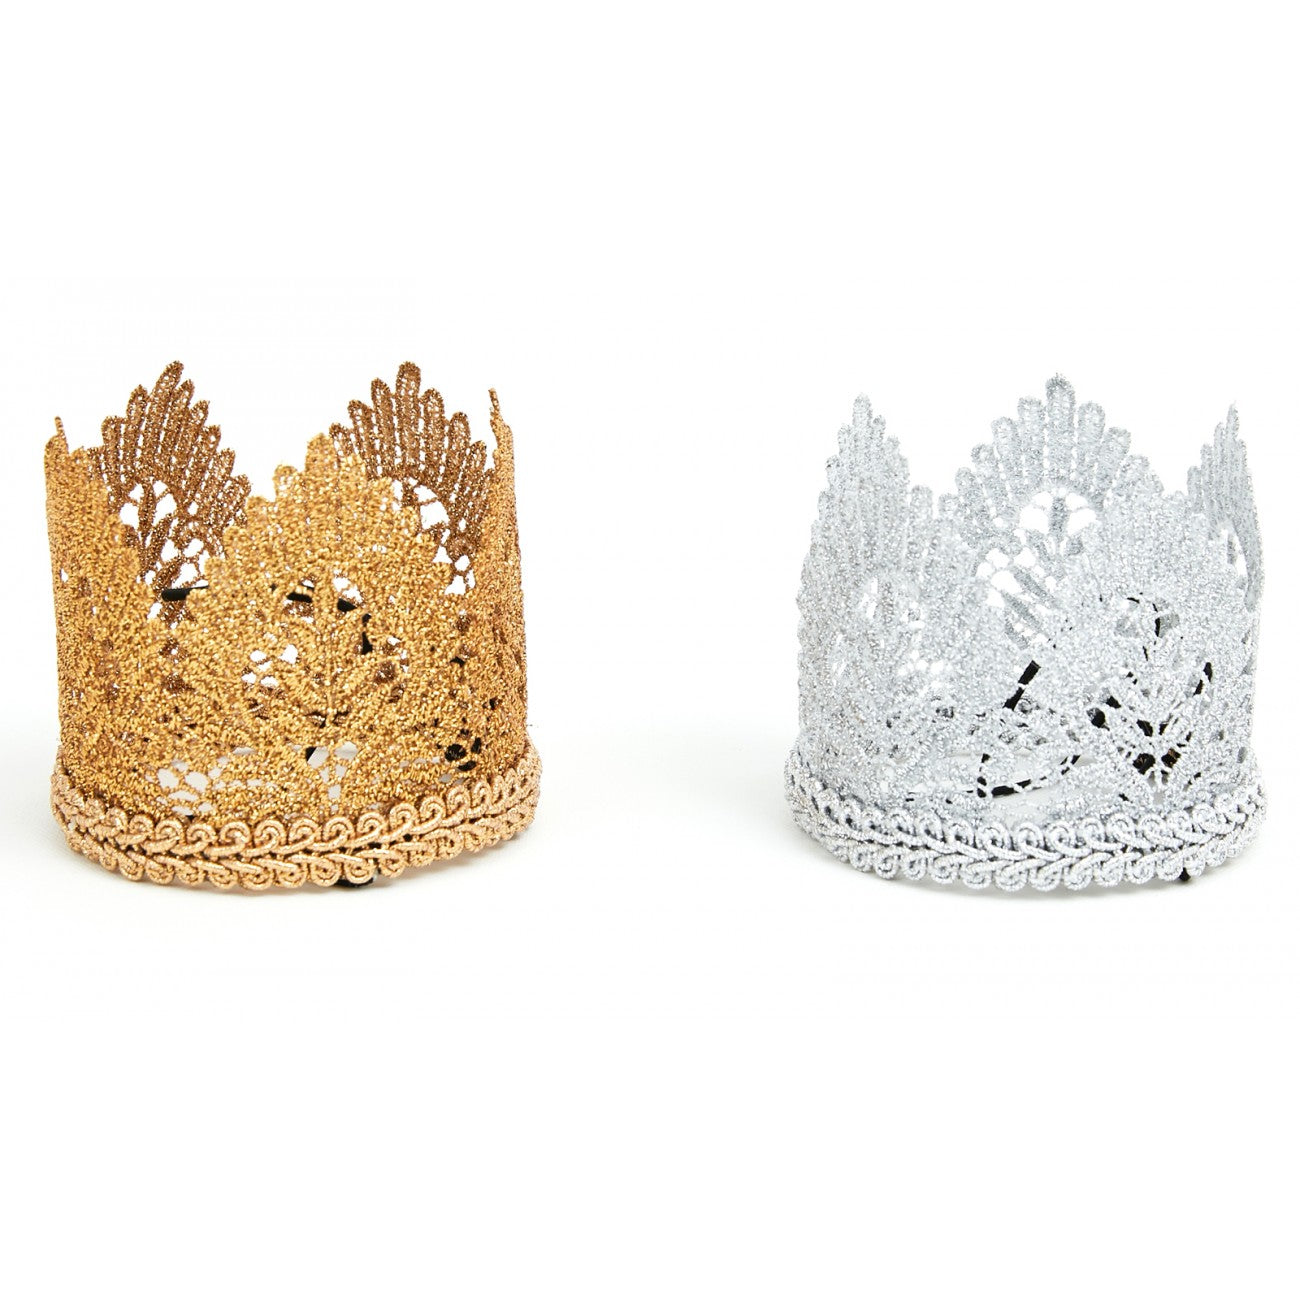 Hard Lace Crown